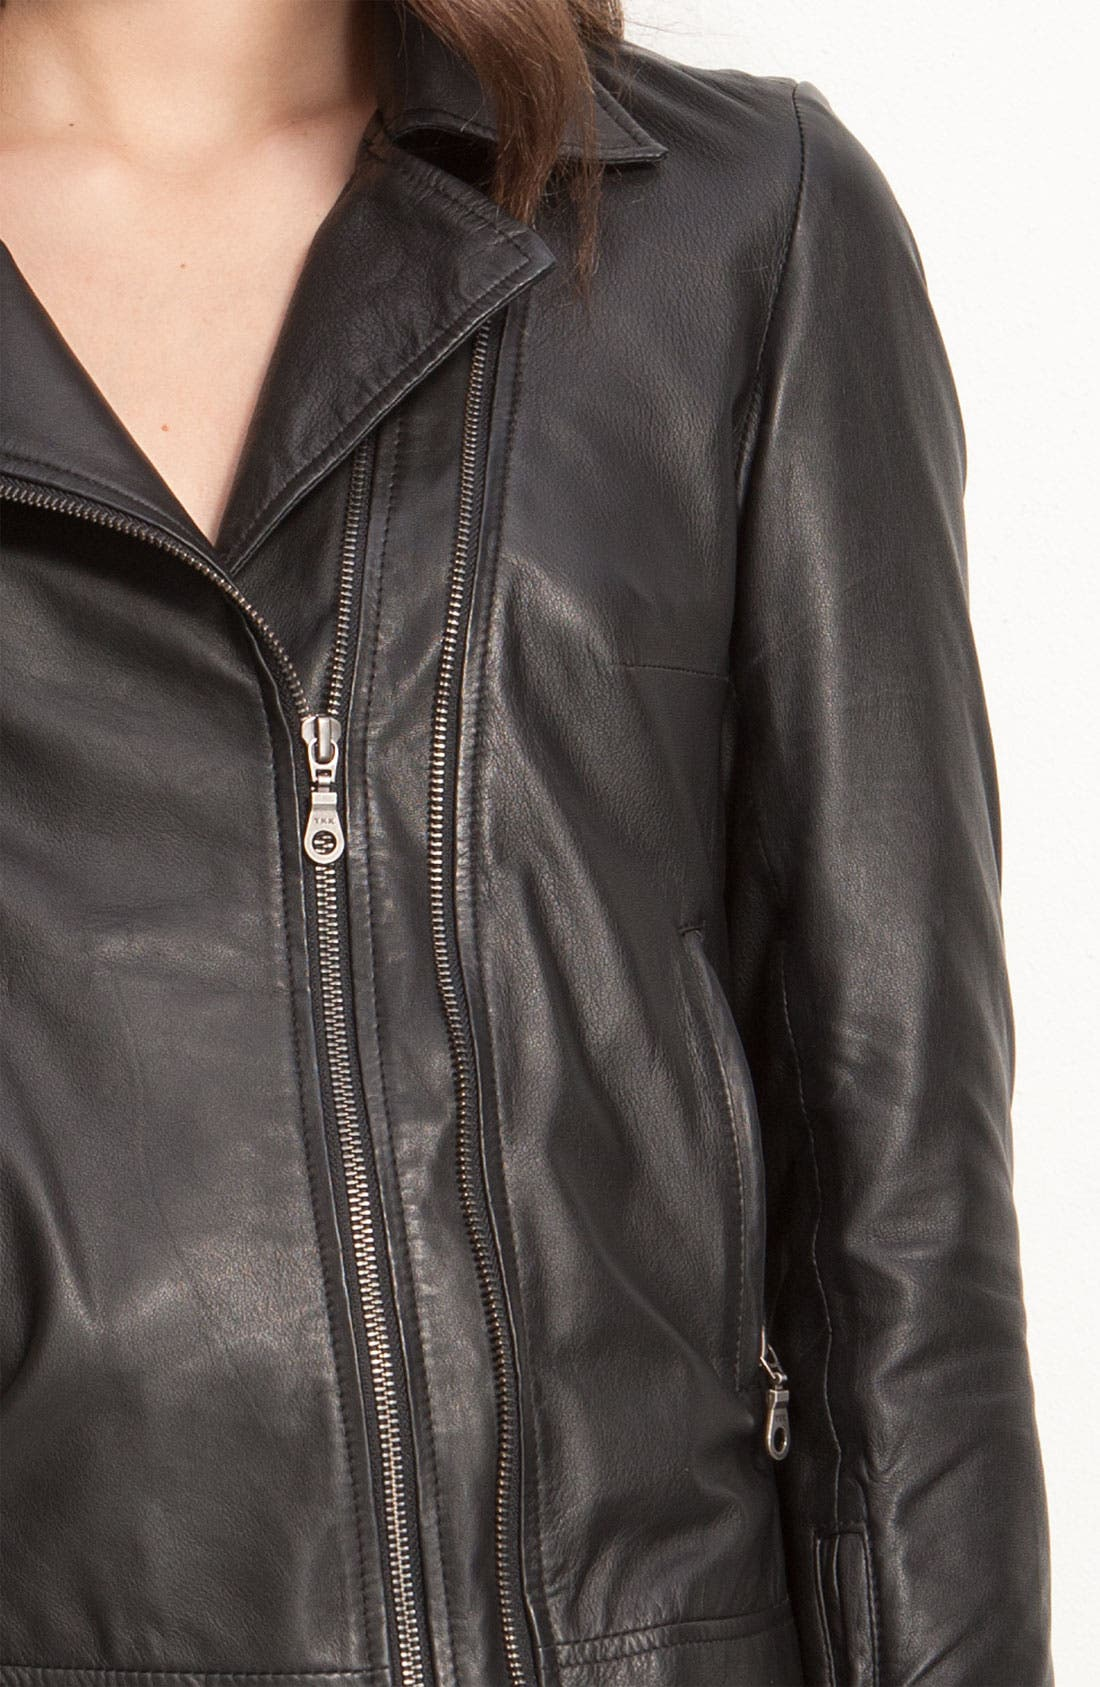 Kenna-T Classic Leather Moto Jacket,                             Alternate thumbnail 3, color,                             001